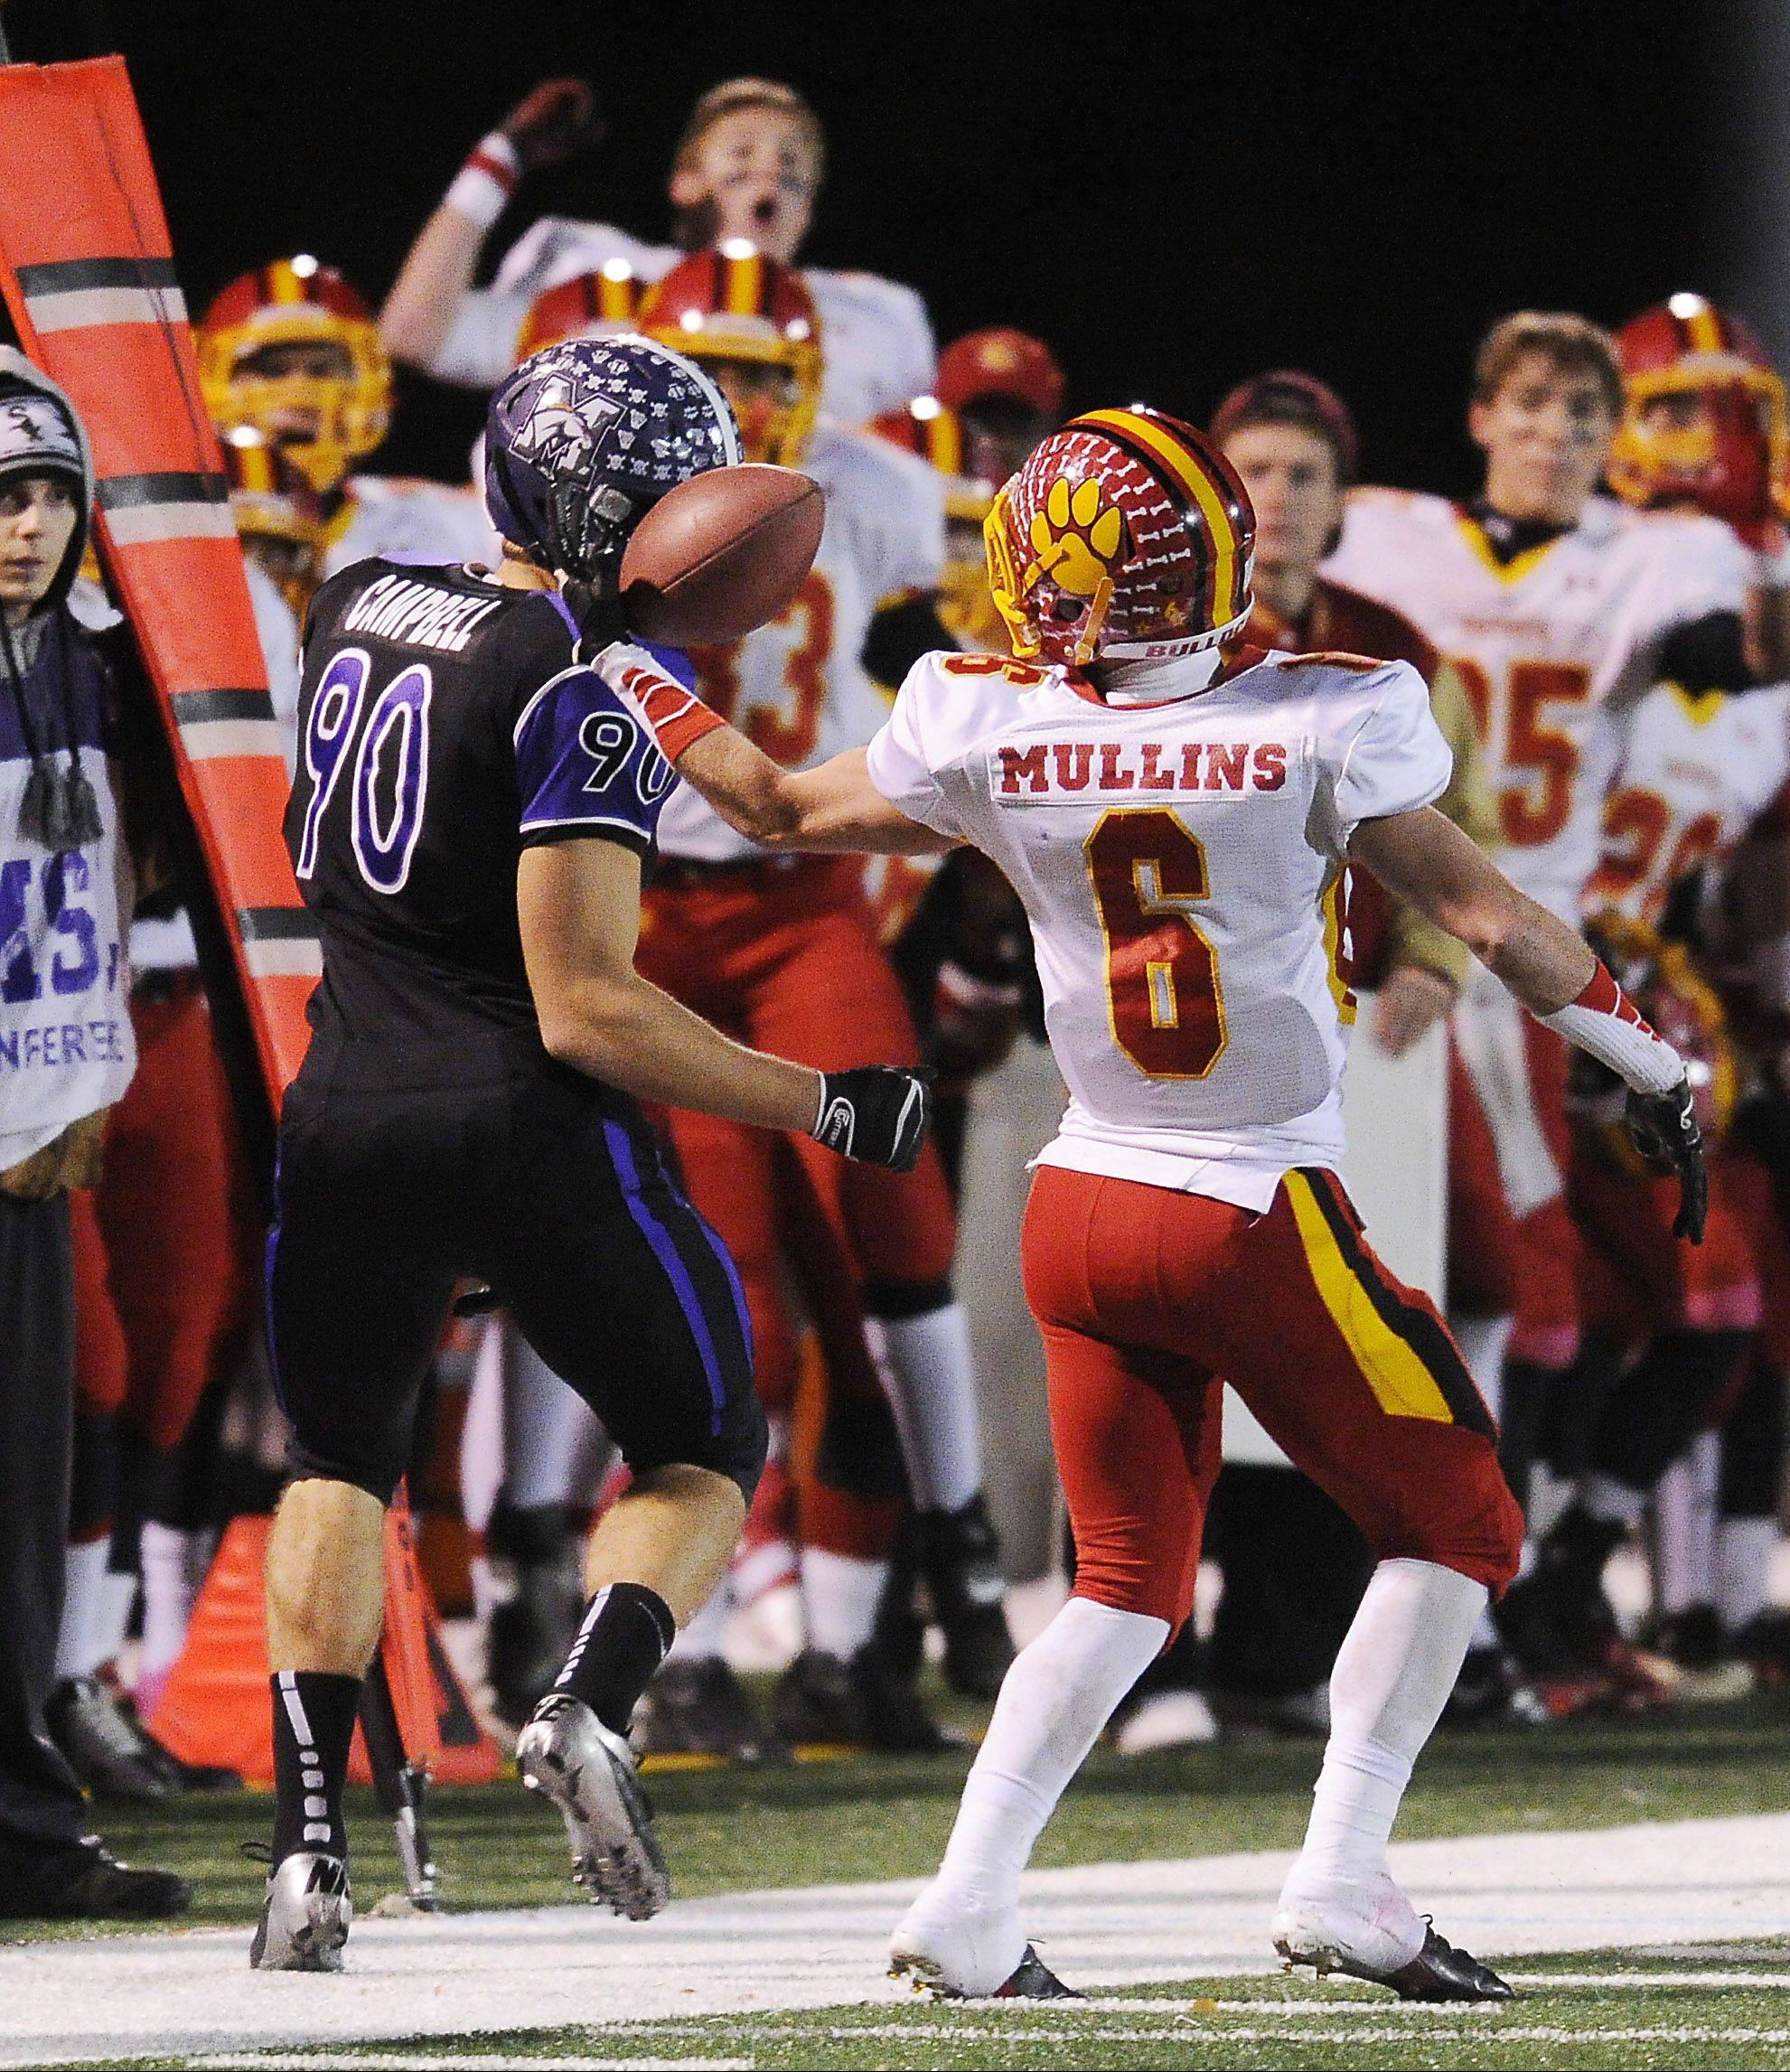 Batavia's Rouke Mullins takes the ball away from Rolling Meadows' Matt Campbell for an interception in the second quarter of the second round of the Class 6A playoffs at Rolling Meadows last Saturday.